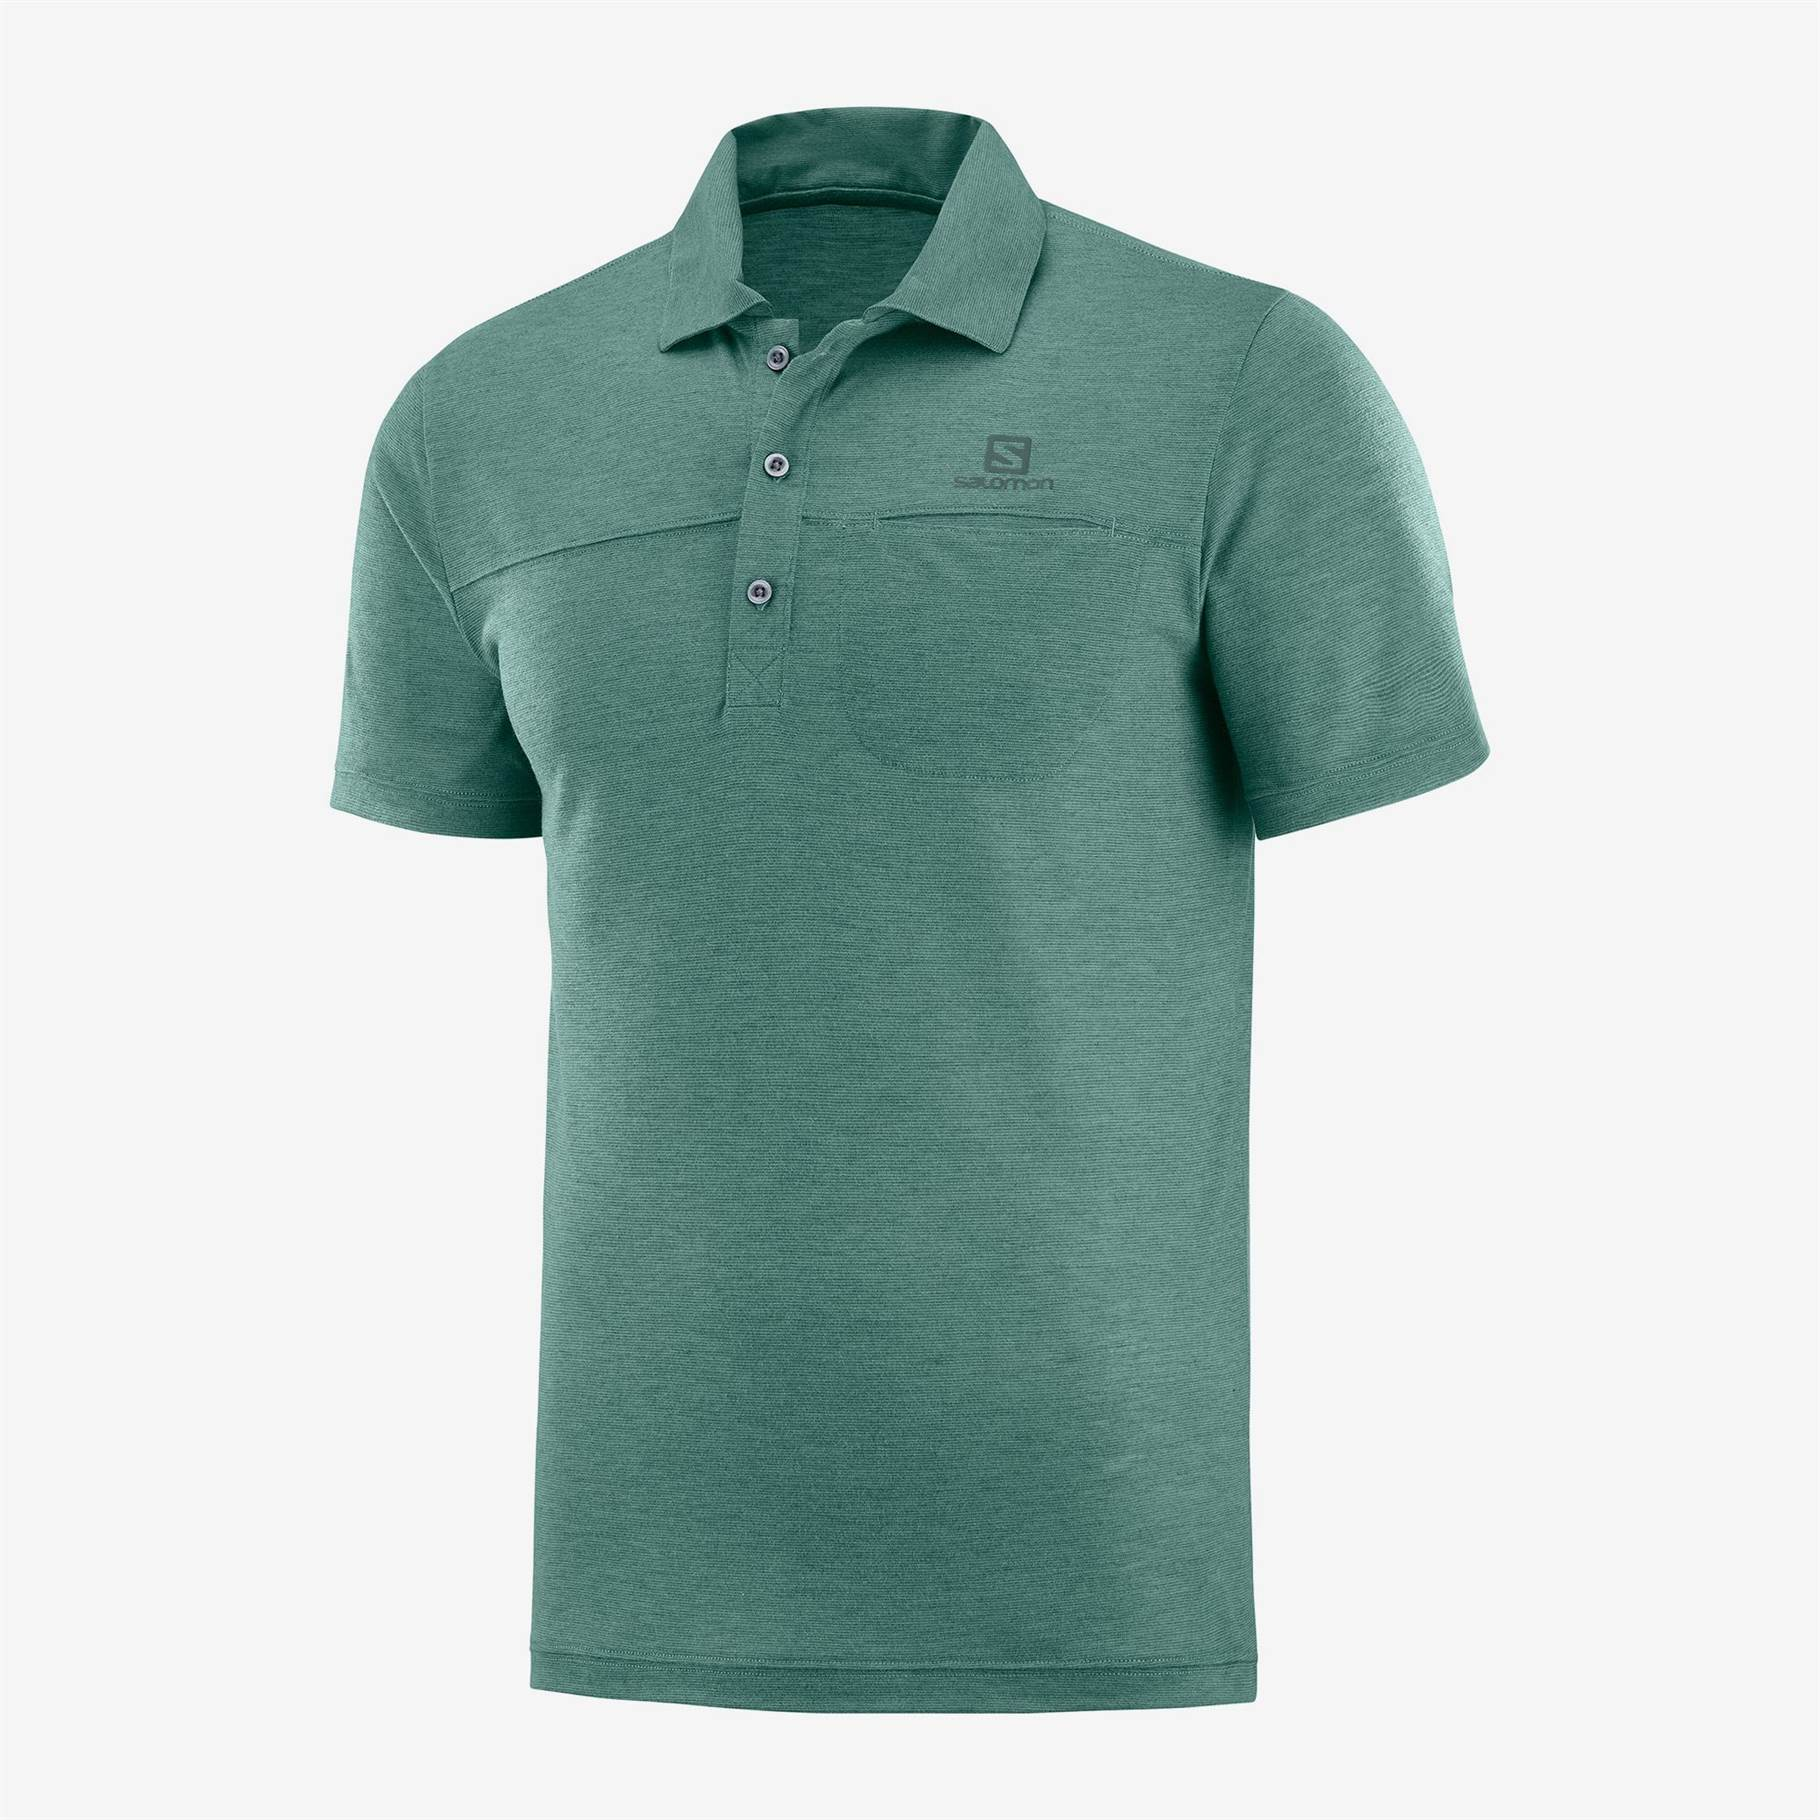 Explore Polo Balsam Green - Men's